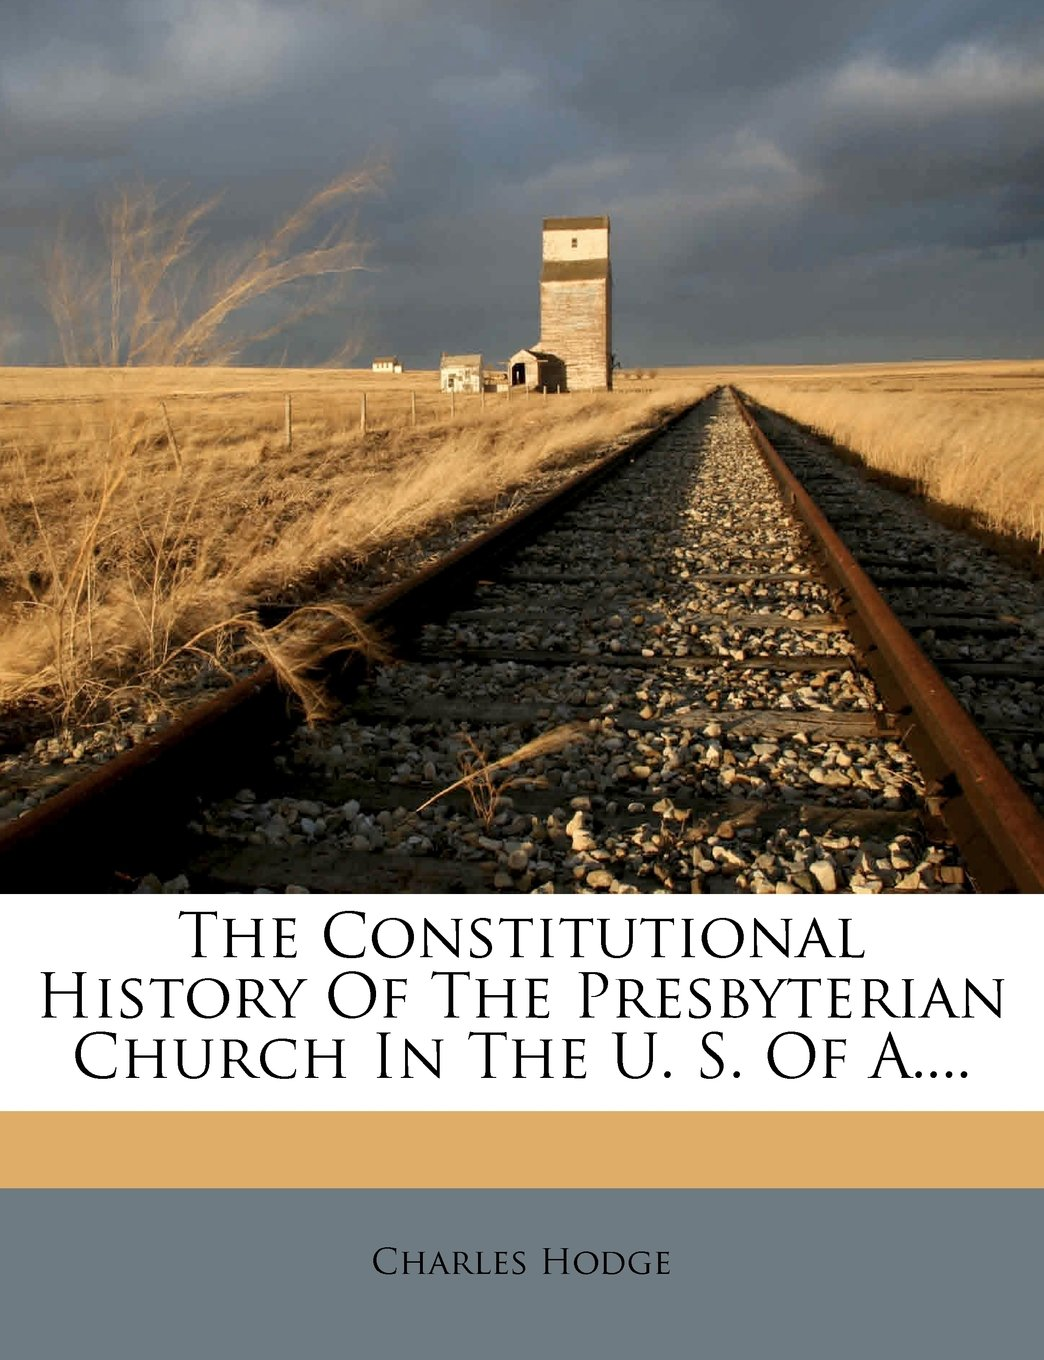 Download The Constitutional History Of The Presbyterian Church In The U. S. Of A.... pdf epub